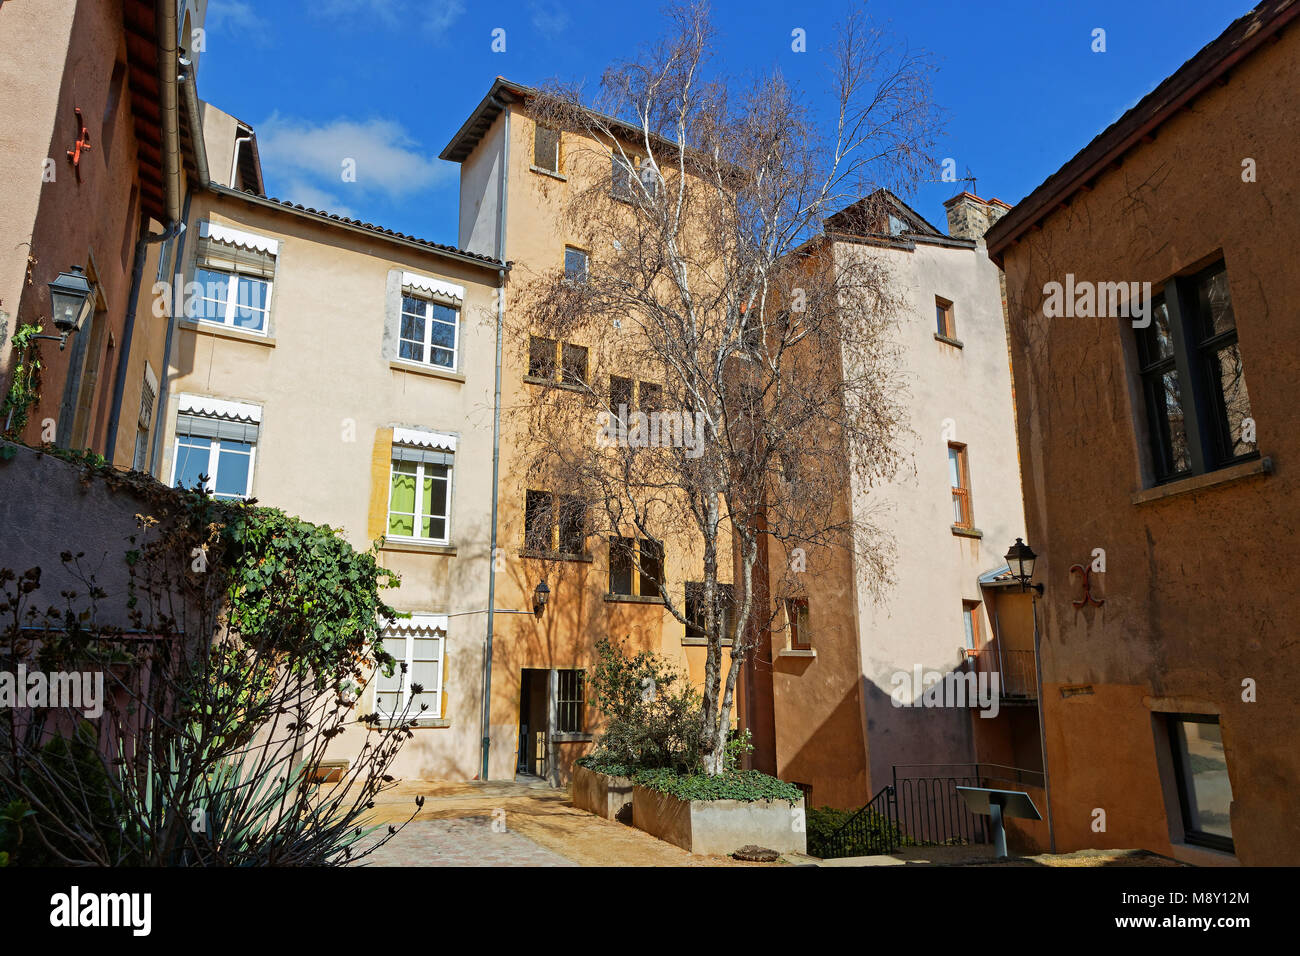 LYON, FRANCE, March 19, 2018 : A traboule in historic center of Lyon. Traboules are a type of passageway originally - Stock Image